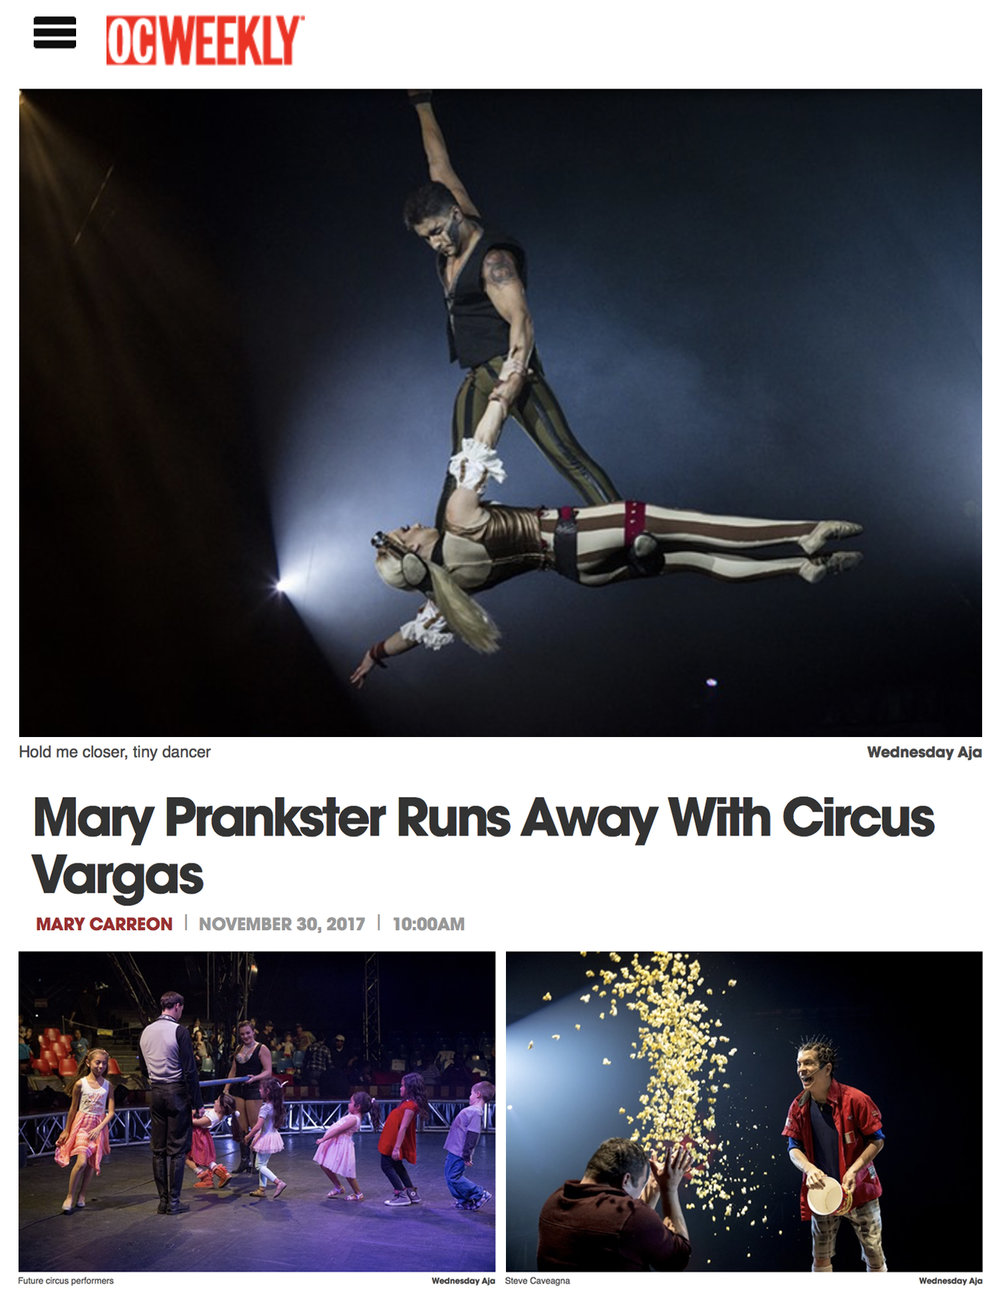 OC WEEKLY // MARY PRANKSTER